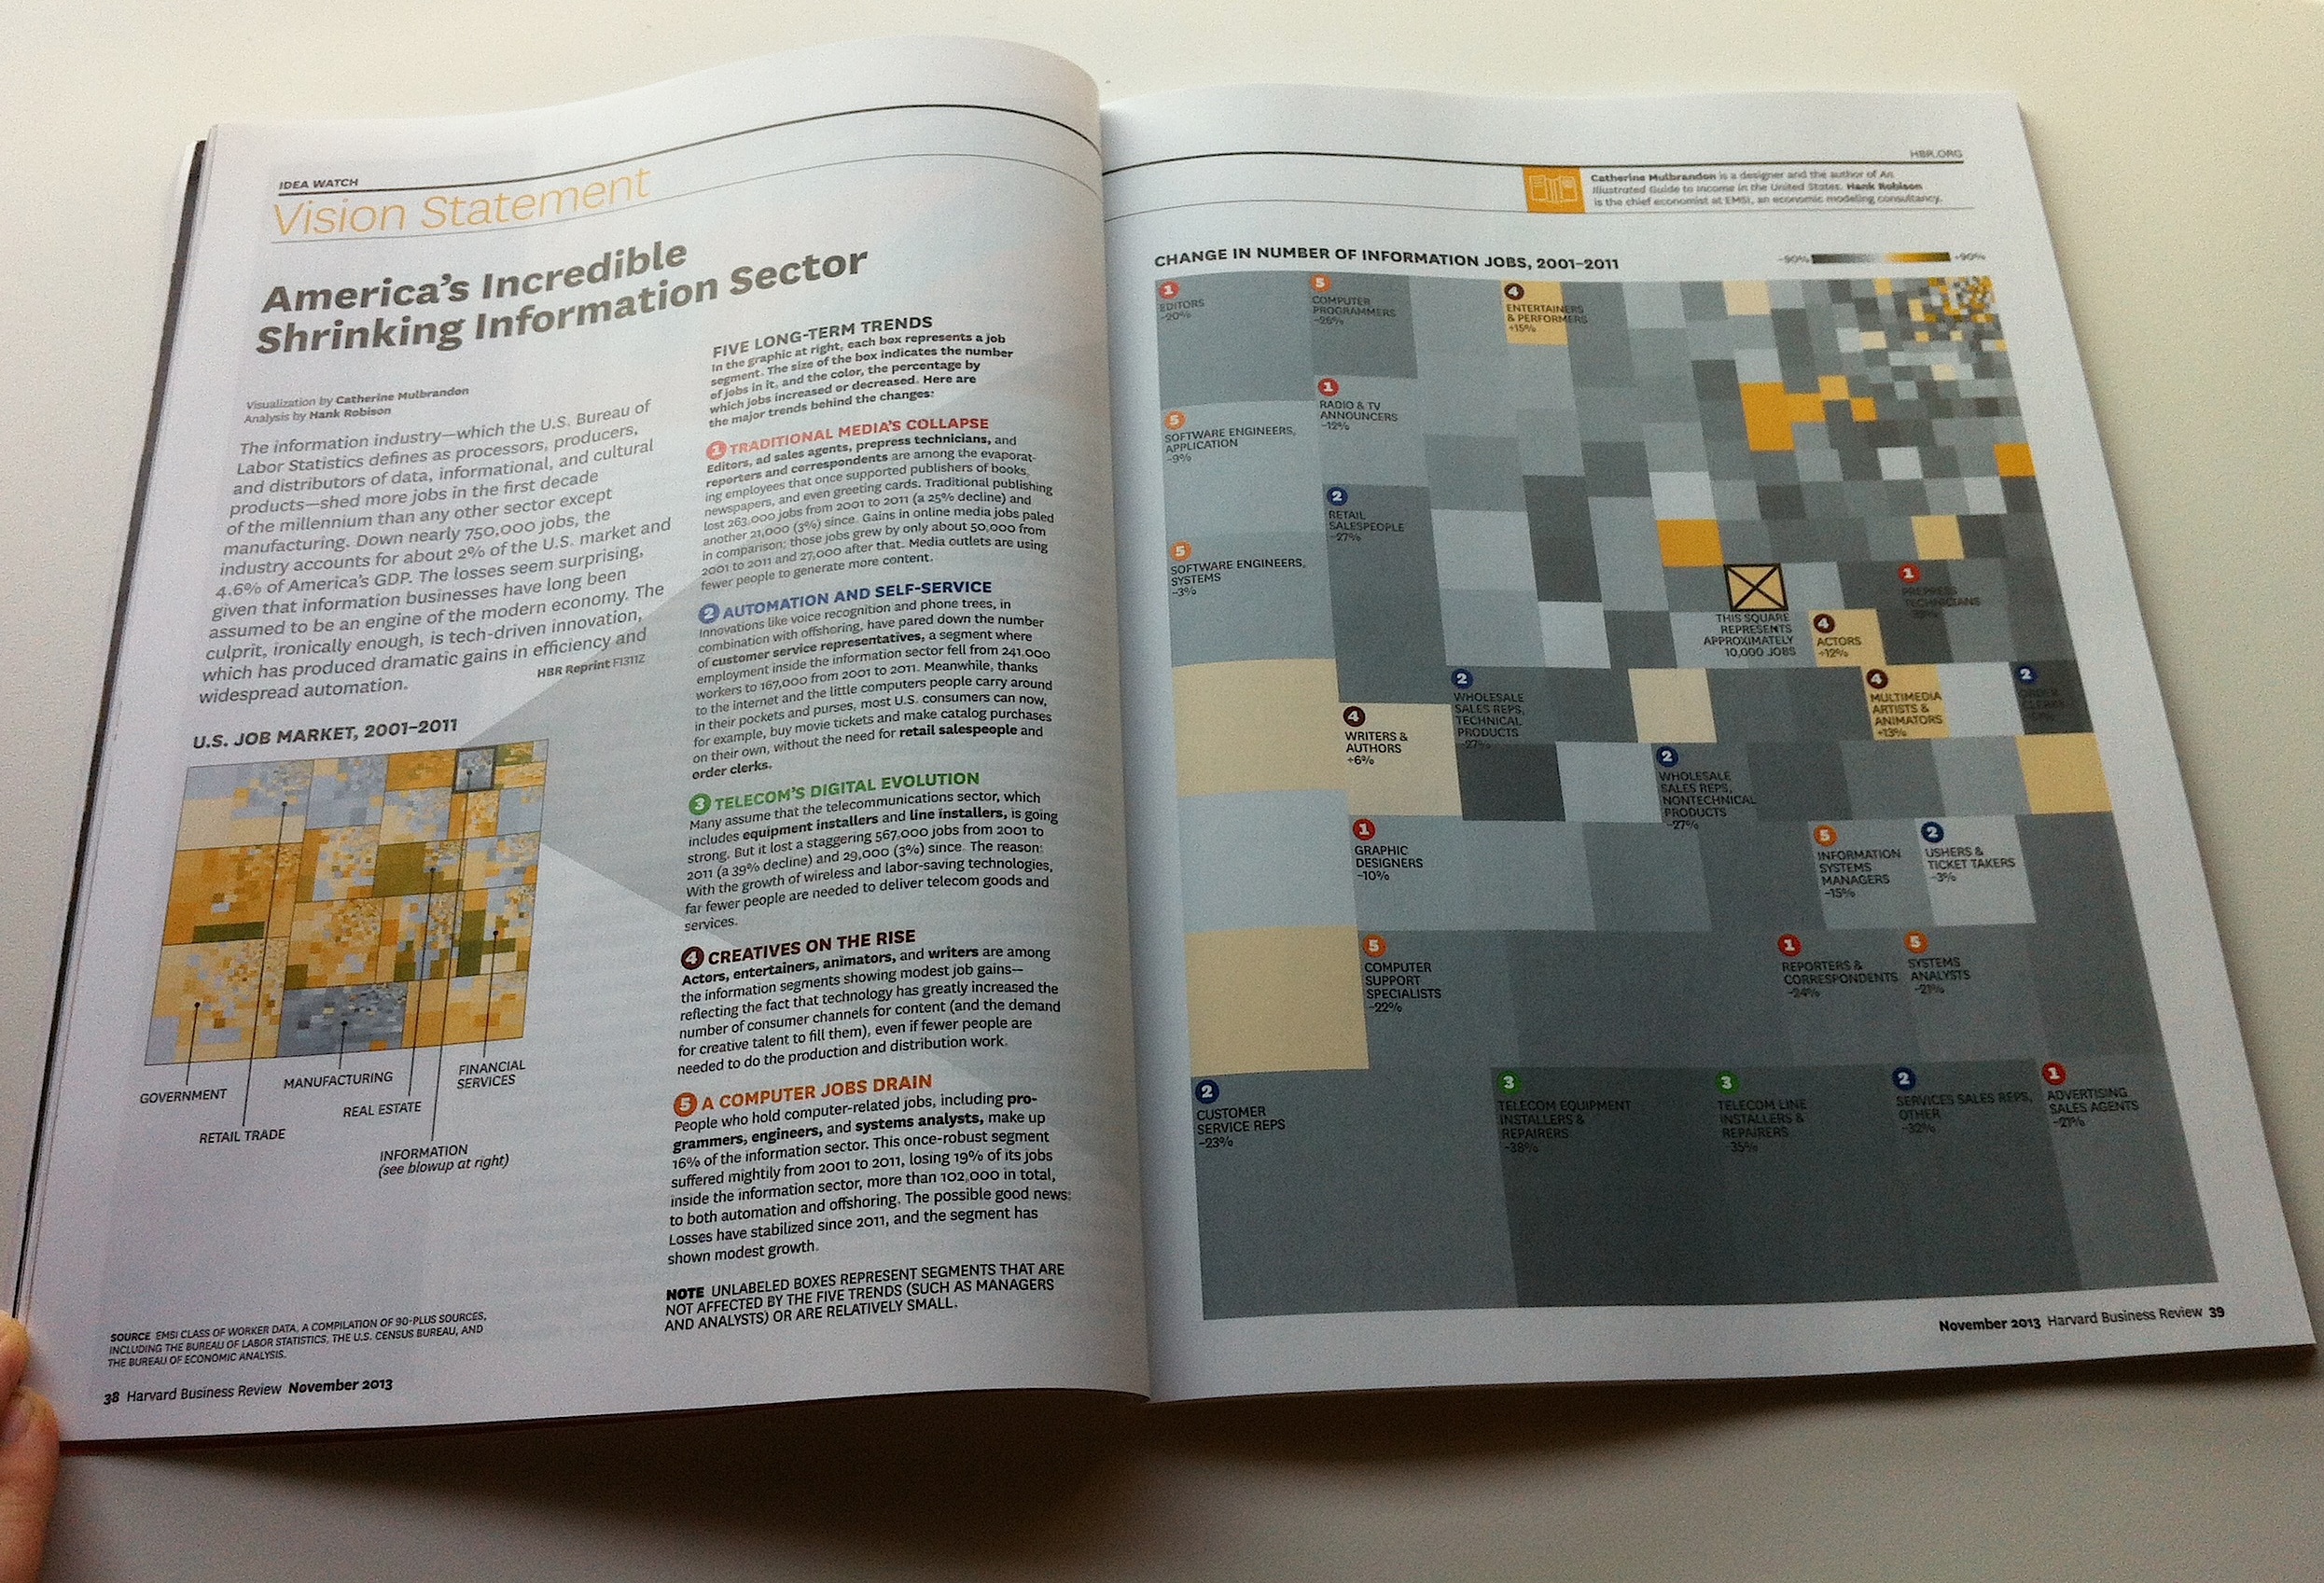 Harvard Business Review November 2013